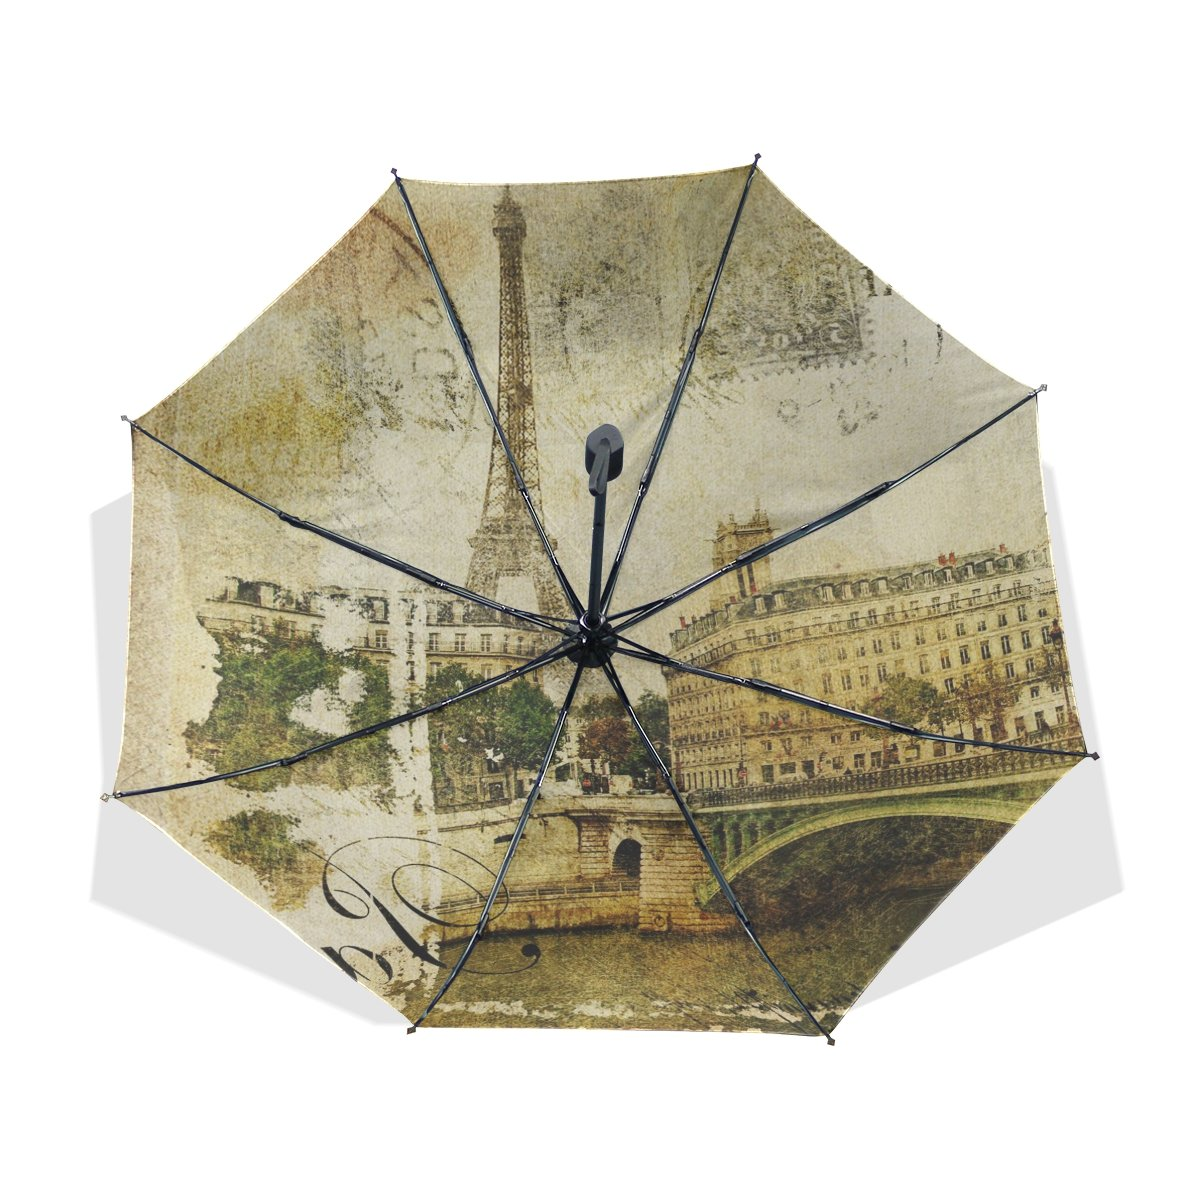 JSTEL Compact Ultra-light and Portable Travel Foldable Rain Umbrella Paris Vintage Pattern 3